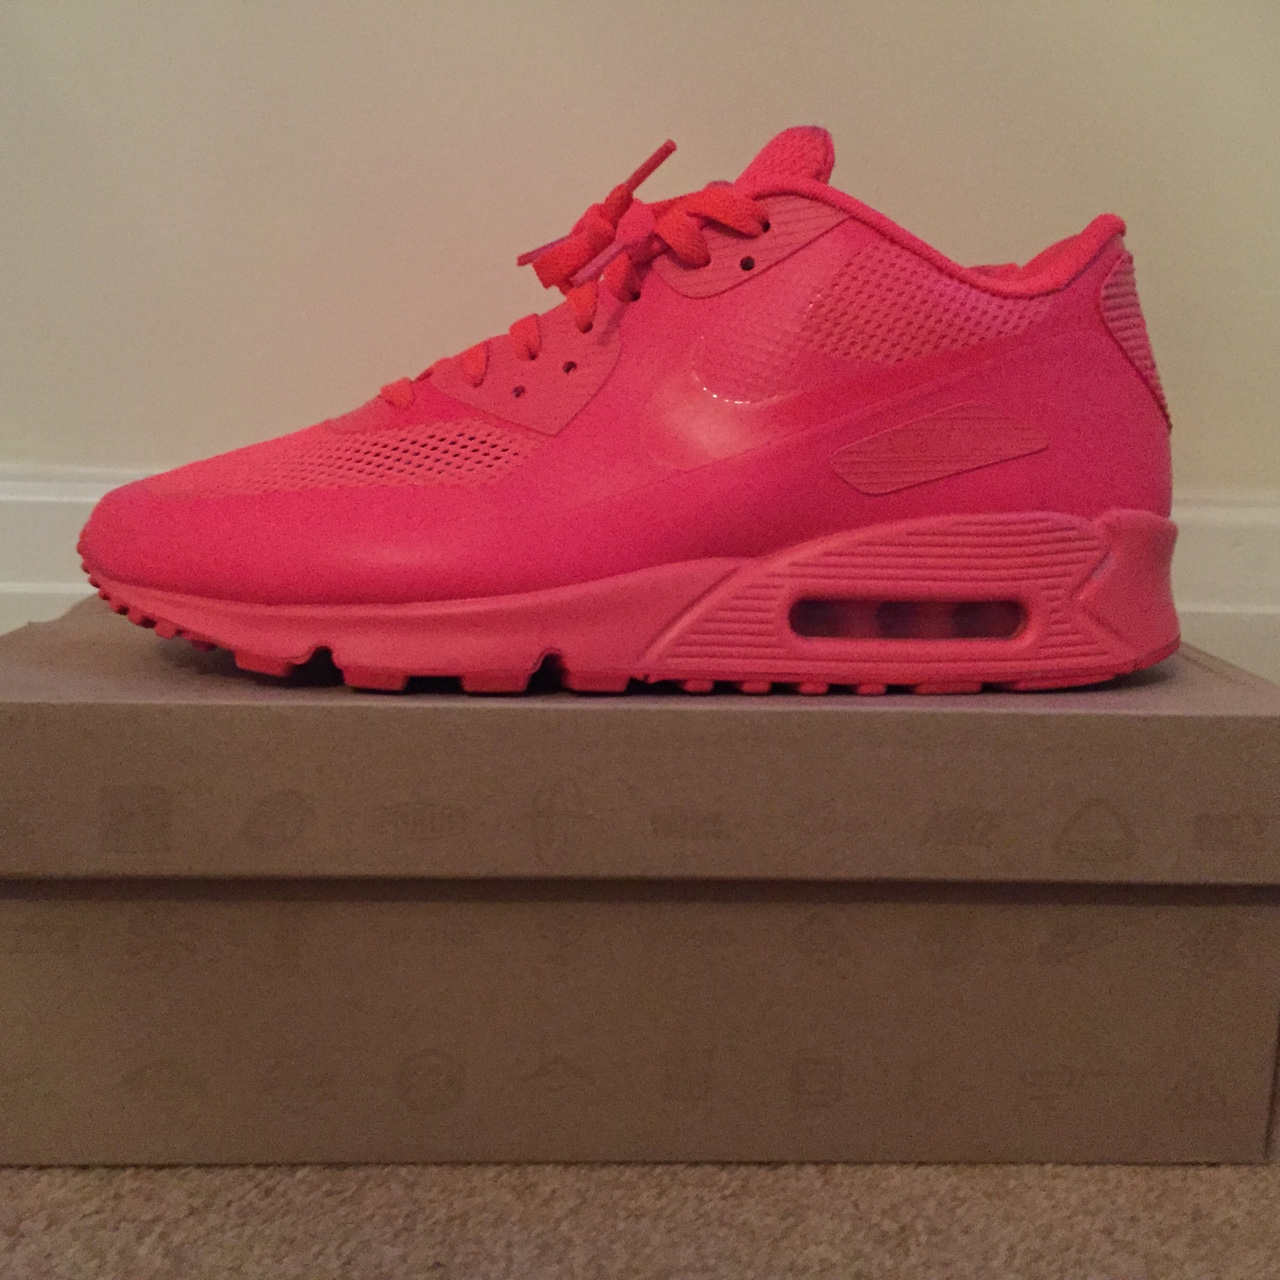 Nike Airmax 90 Hyperfuse Solar Red. UK 9. 9.510 Depop